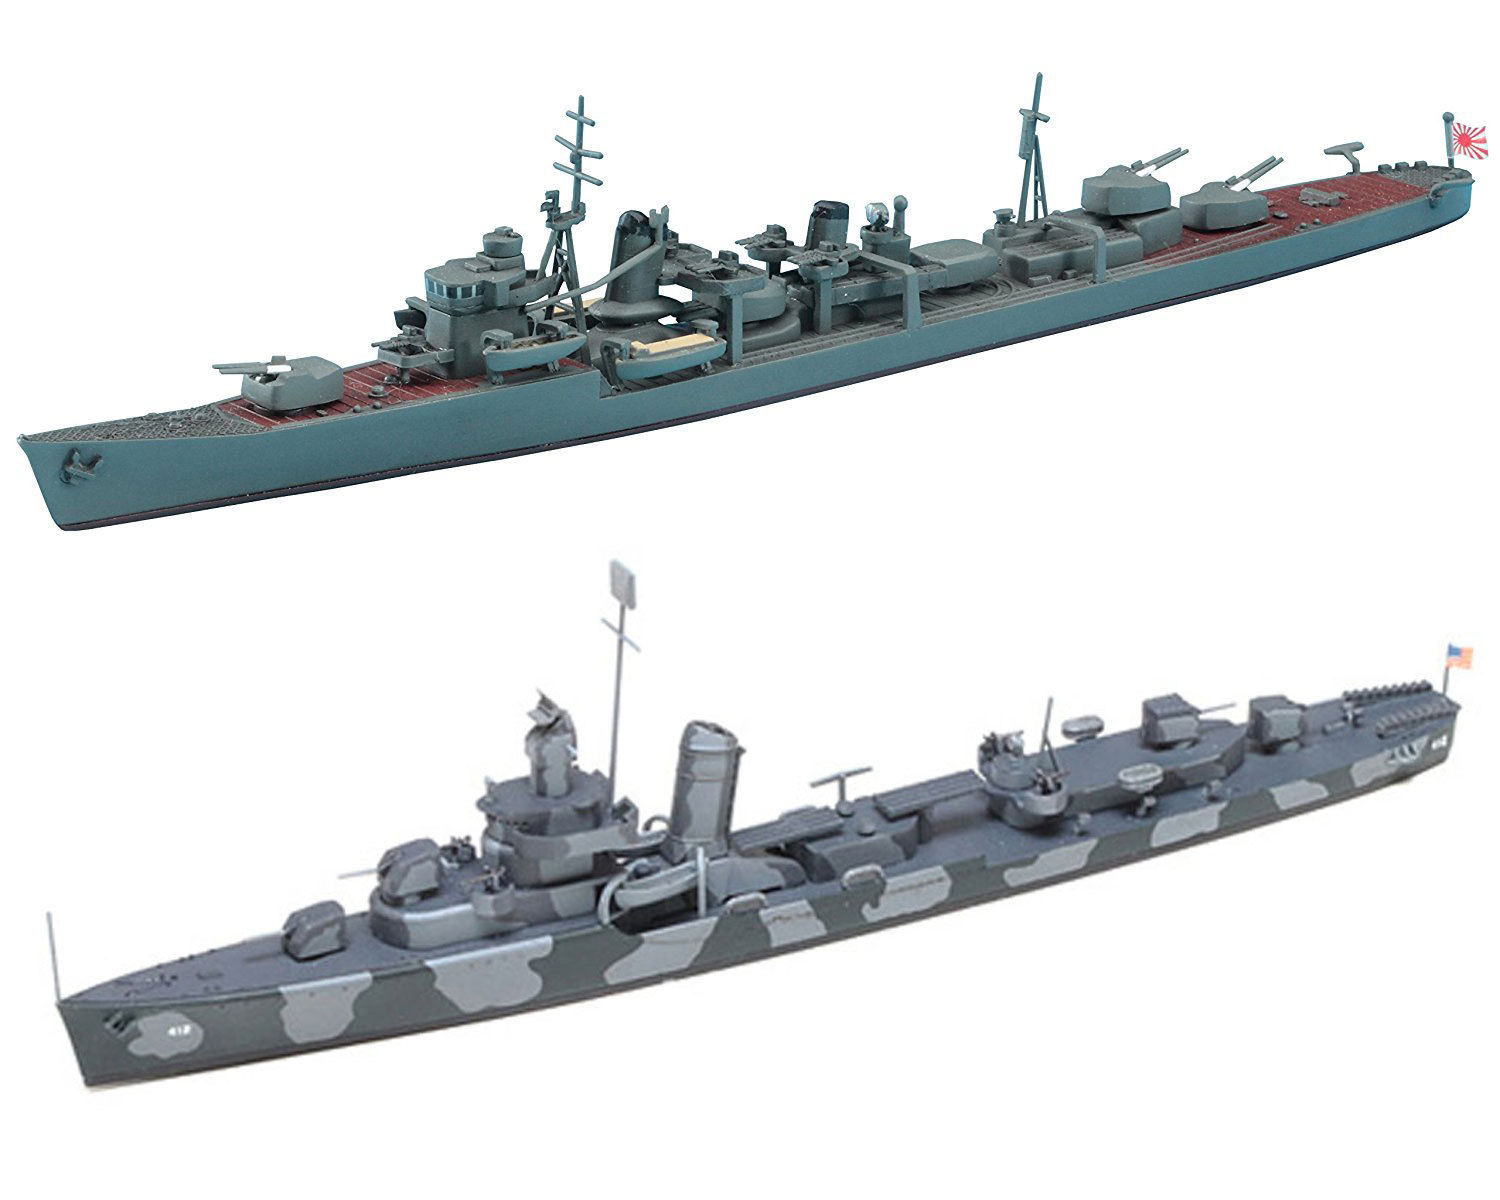 Primary image for 2 Ship Assembly Models of Japanese and US Navy Destroyers - Arashio and Hammann